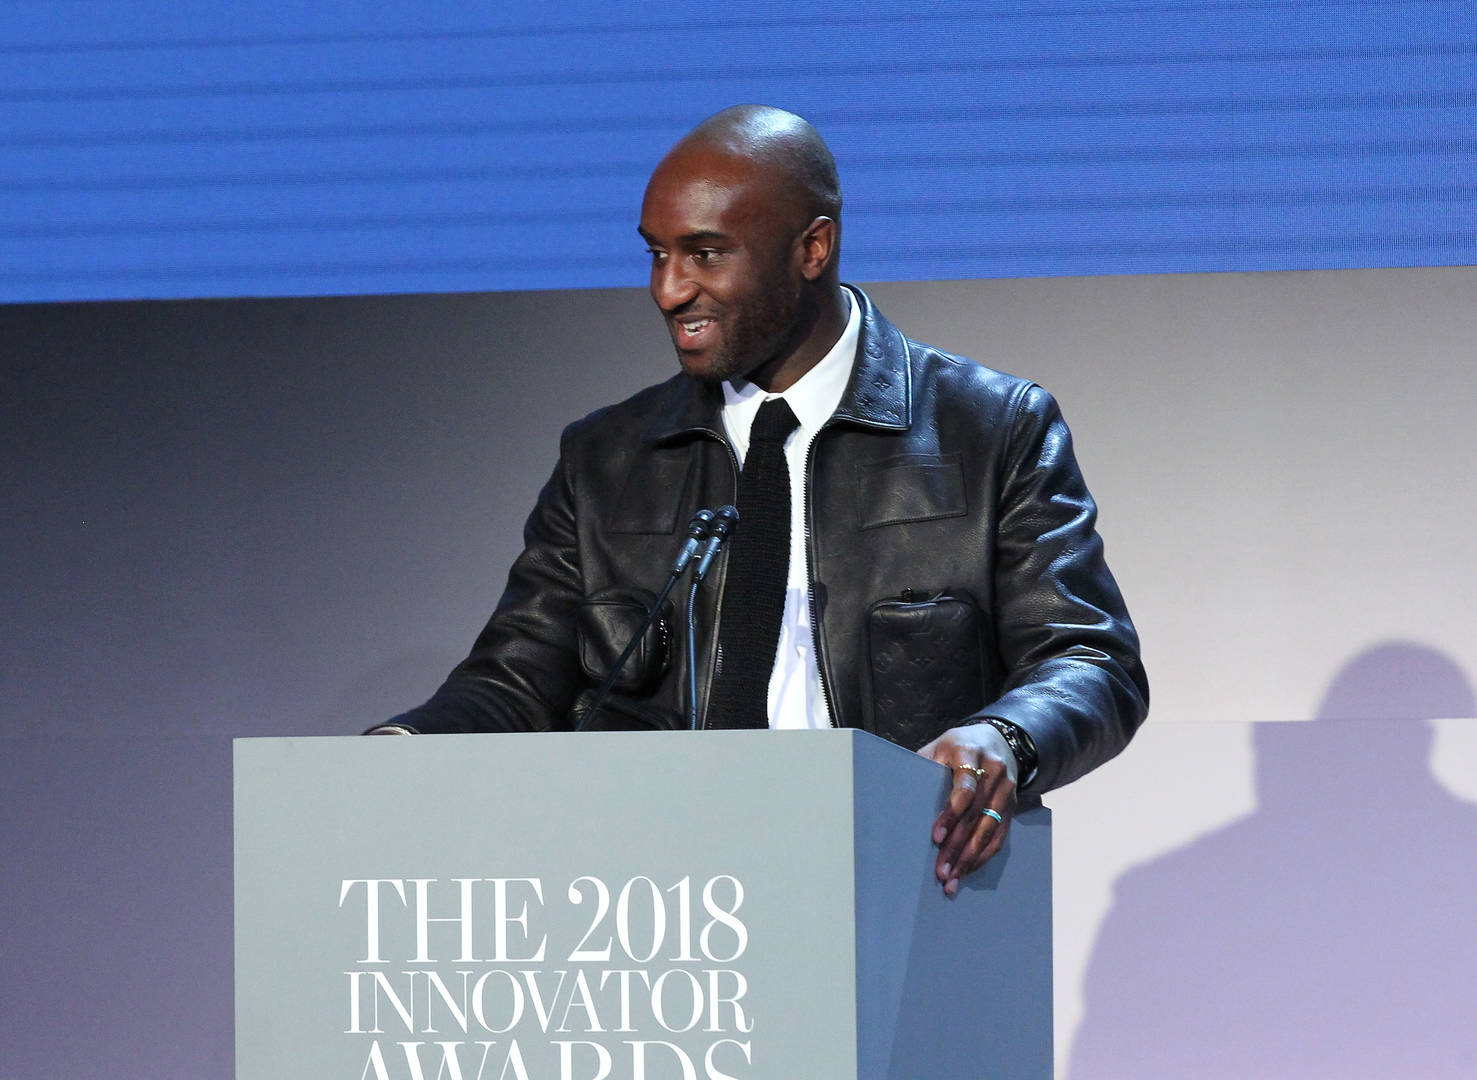 Louis Vuitton And Virgil Abloh Pull Michael Jackson-Themed Clothes